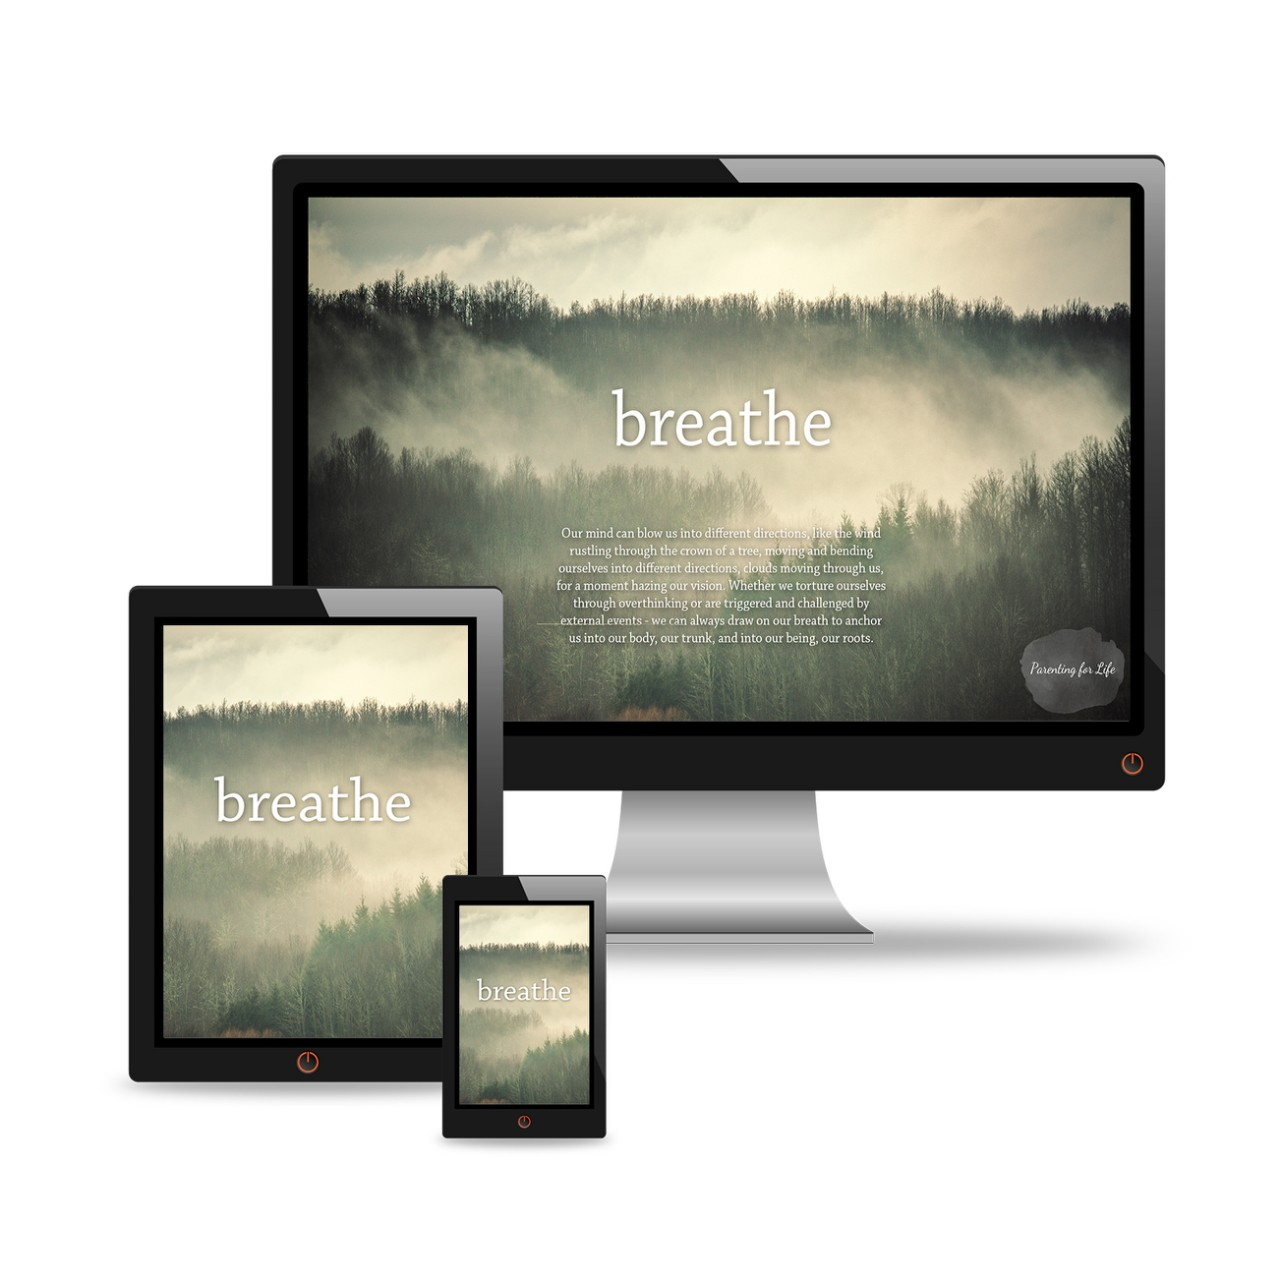 Breathe Wallpaper Parenting For Life